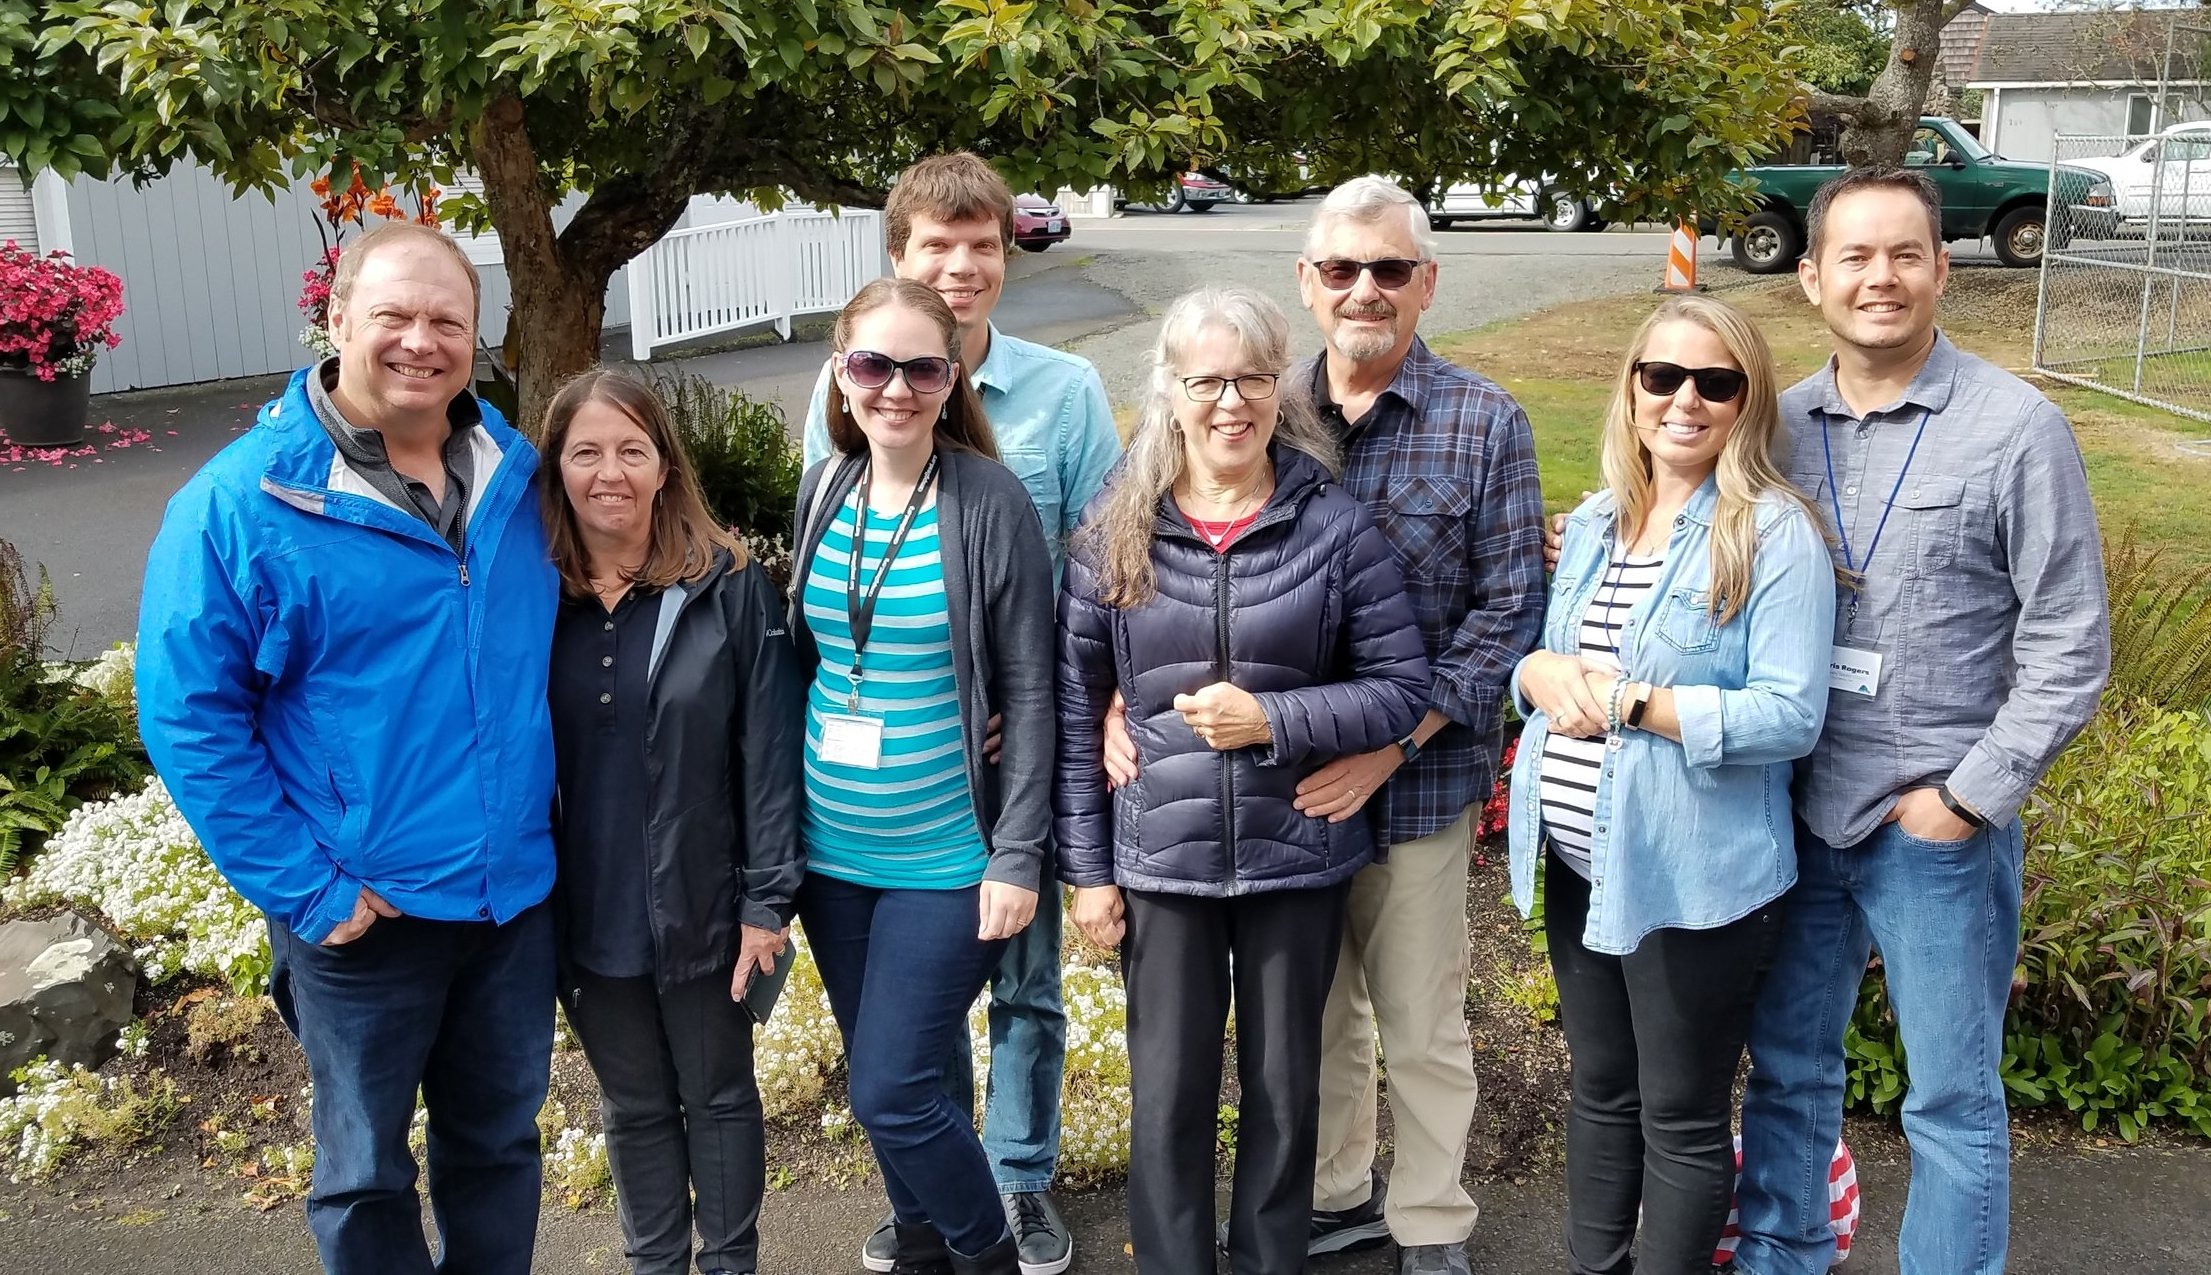 Meeting of our DBC team outside the chapel of Cannon Beach Christian Conference Center.